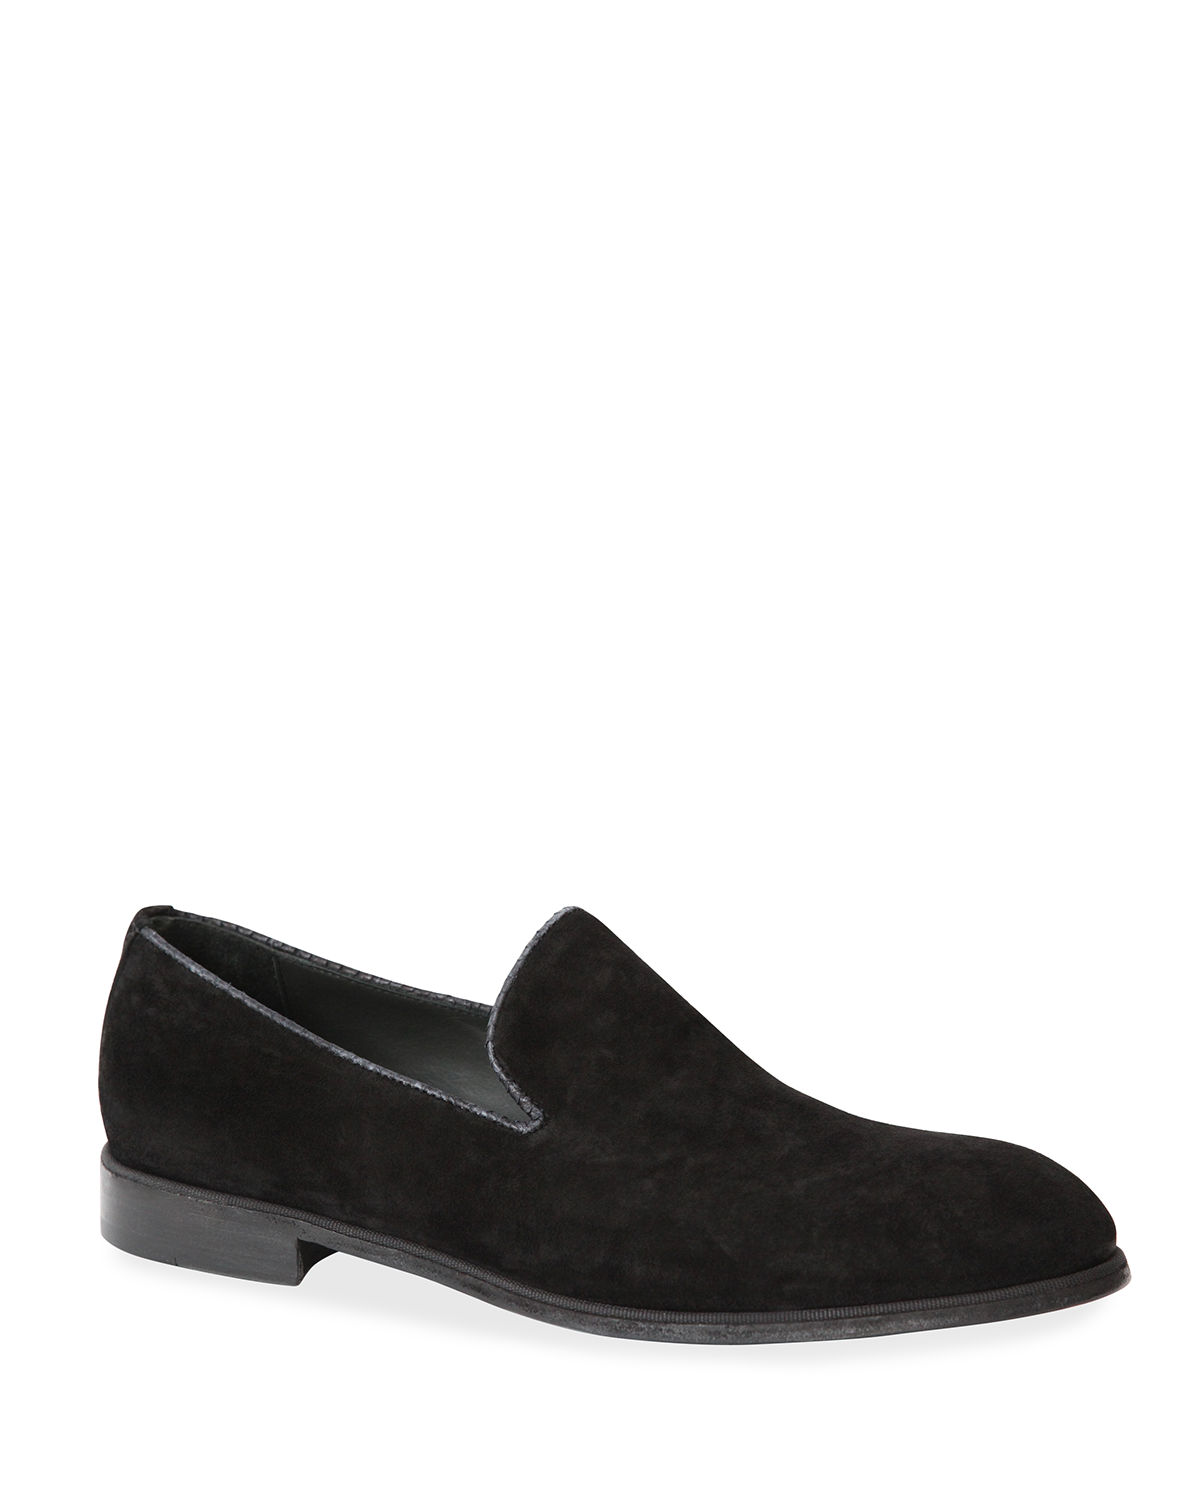 Men's Suede Loafers with Python Trim